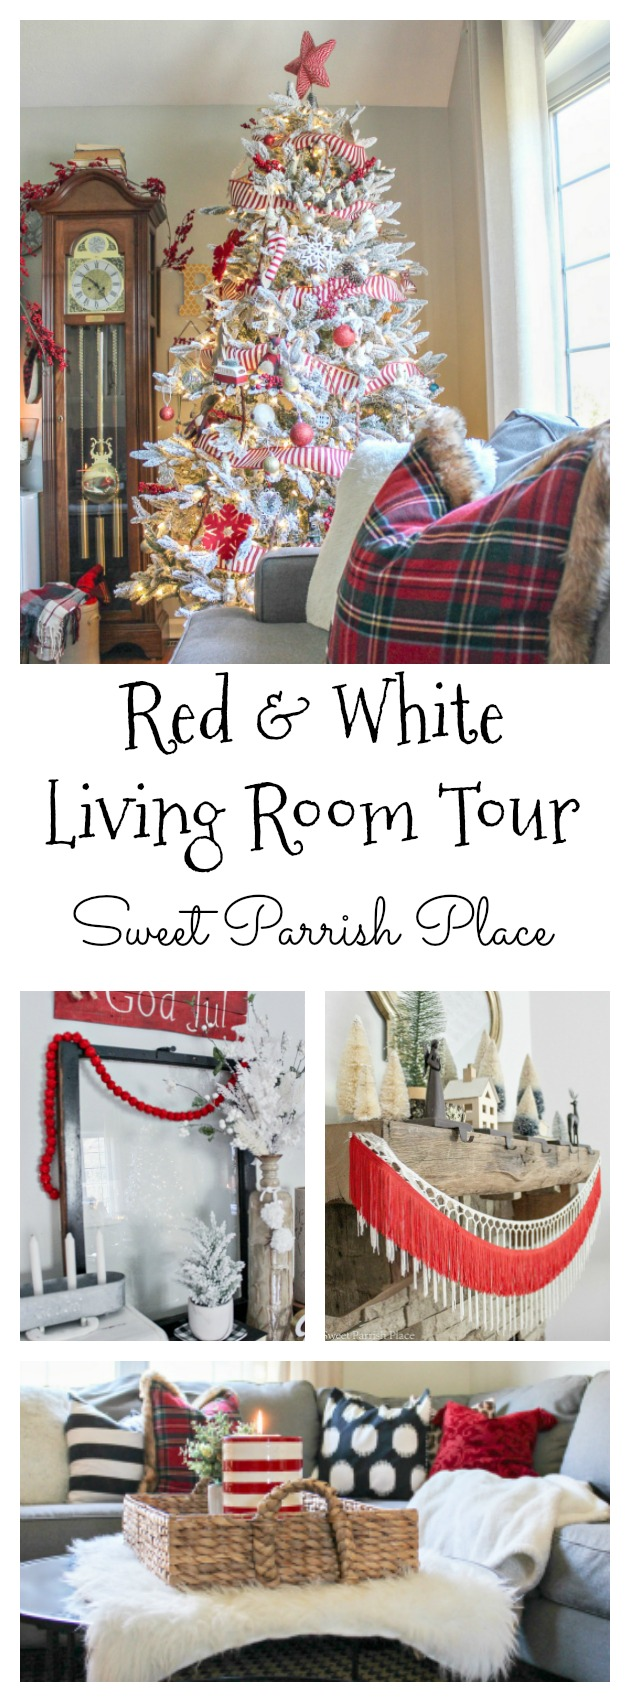 Welcome to my Red and White Christmas Living Room that I'm sharing today as part of the Christmas Tour Of Homes.